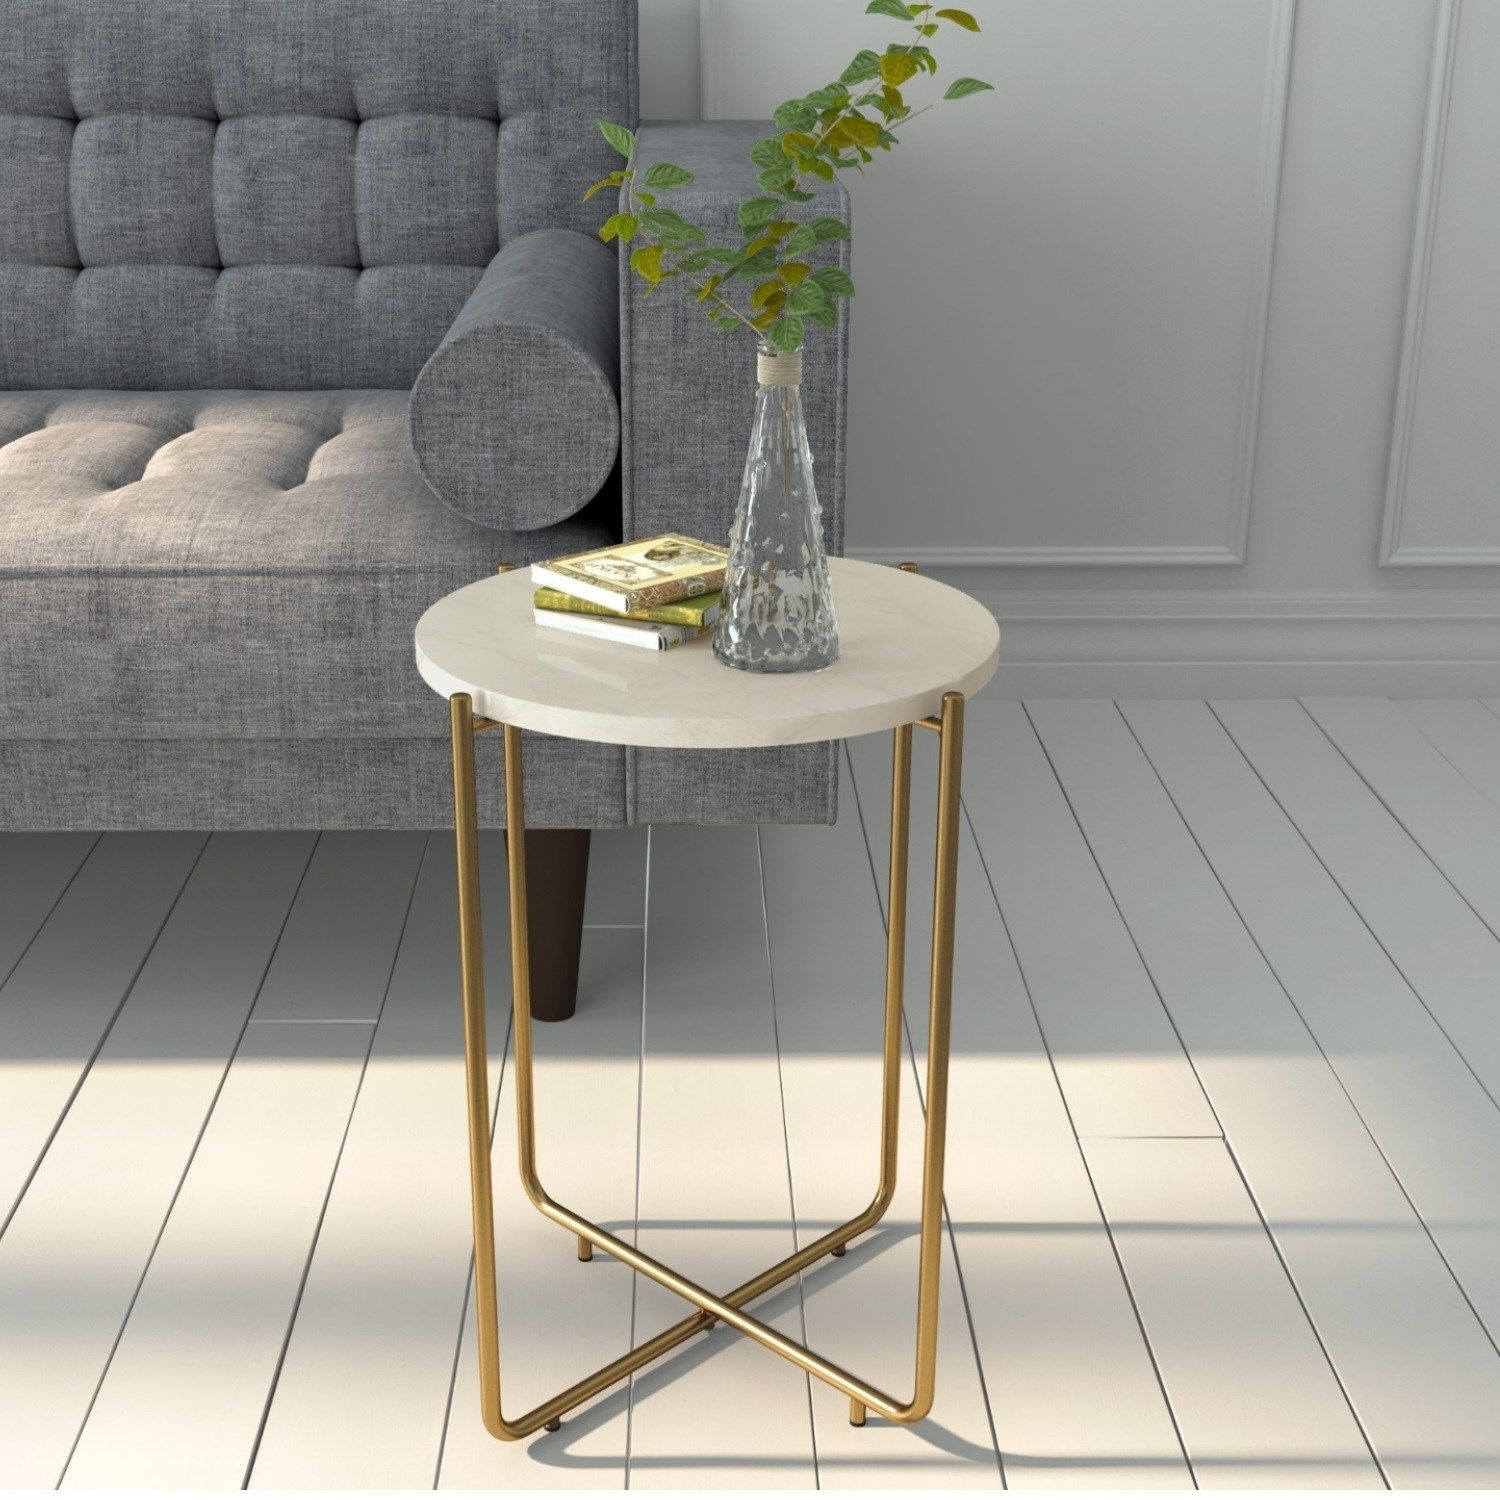 Marble Side Table In White With Gold Metal Base Martina Furniture123 In 2020 Table Furniture Round Coffee Table